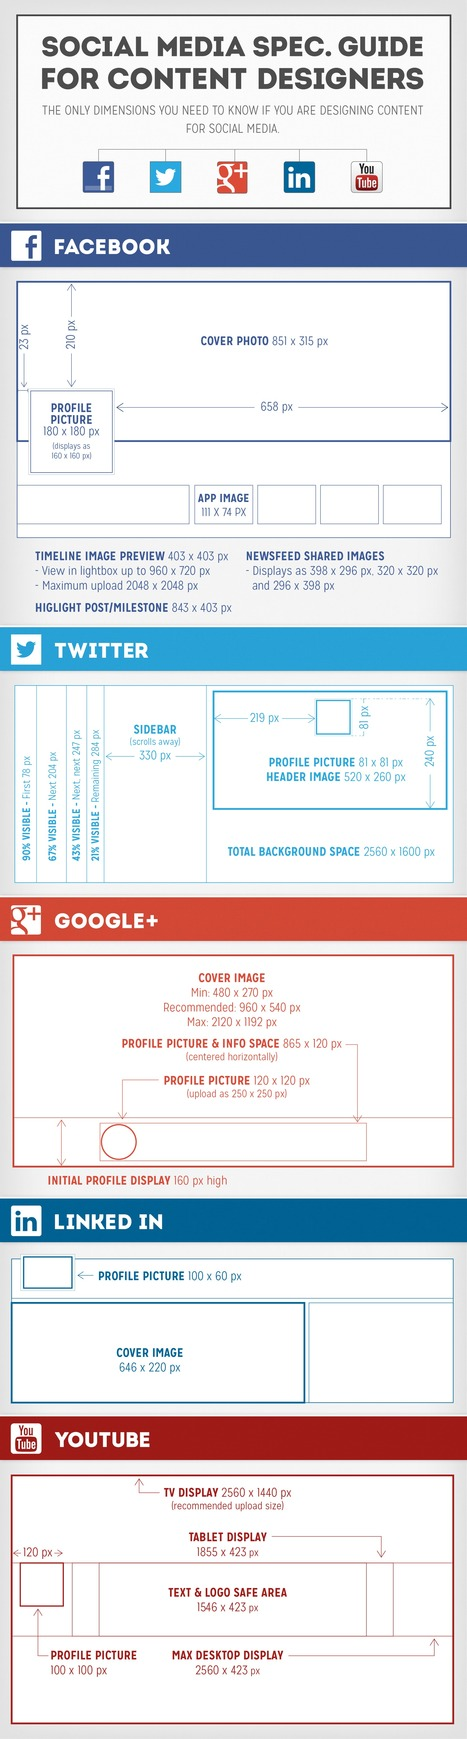 Social Media Image Size Guide [INFOGRAPHIC] | Social | Scoop.it